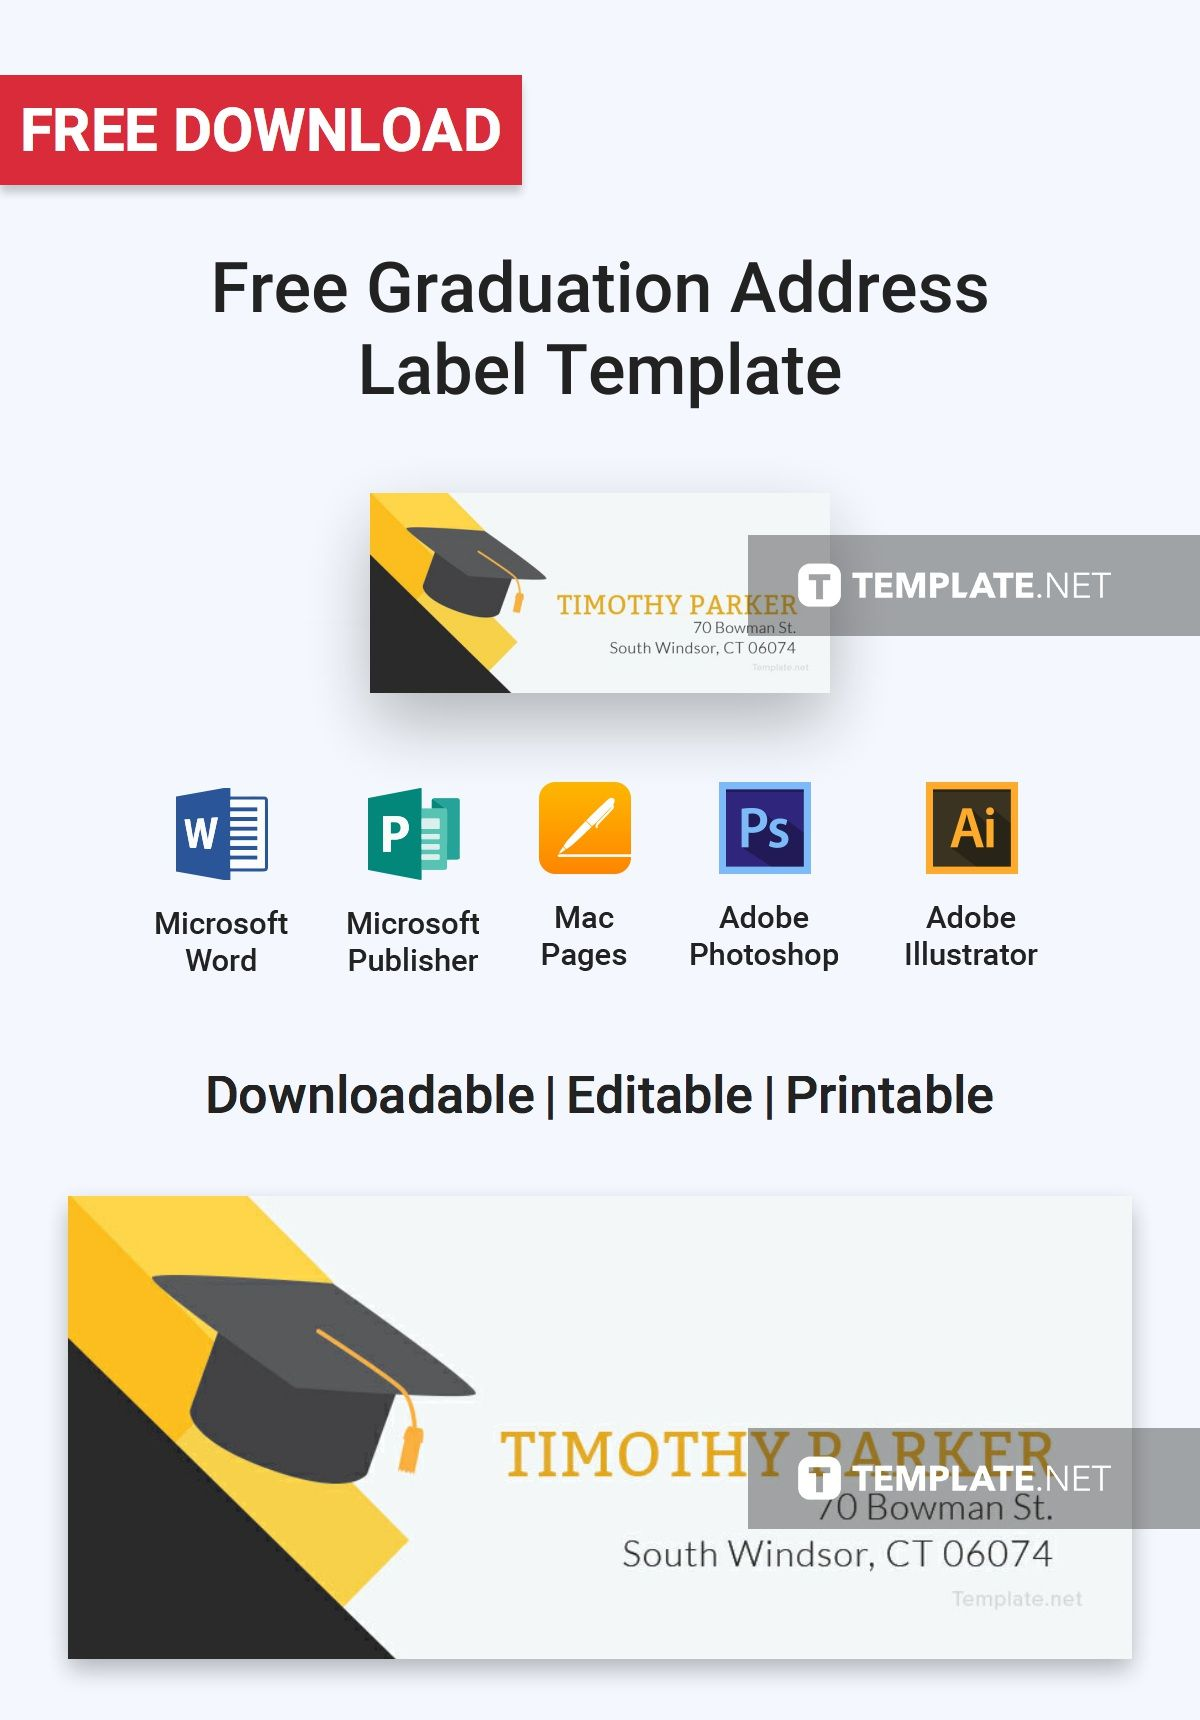 Free Download Label Templates Microsoft Word Free Graduation Address Label  Address Label Template Label .